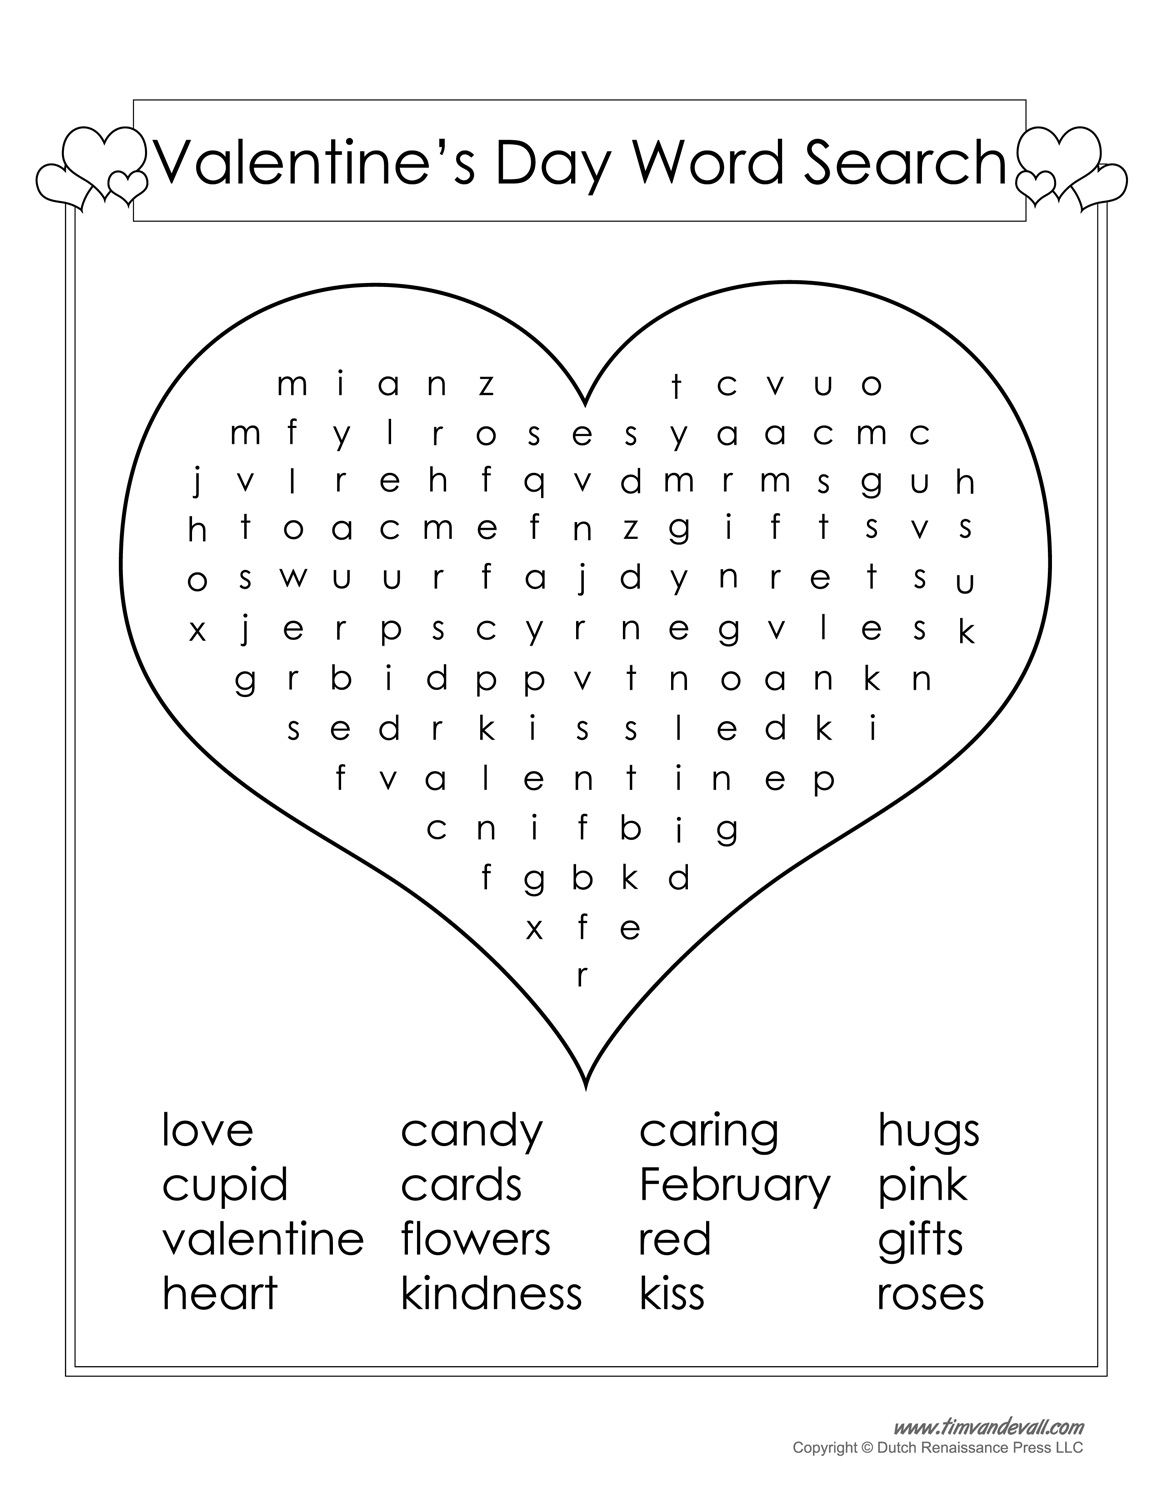 12 Valentine's Day Word Search | Kittybabylove - Printable Valentine Puzzles